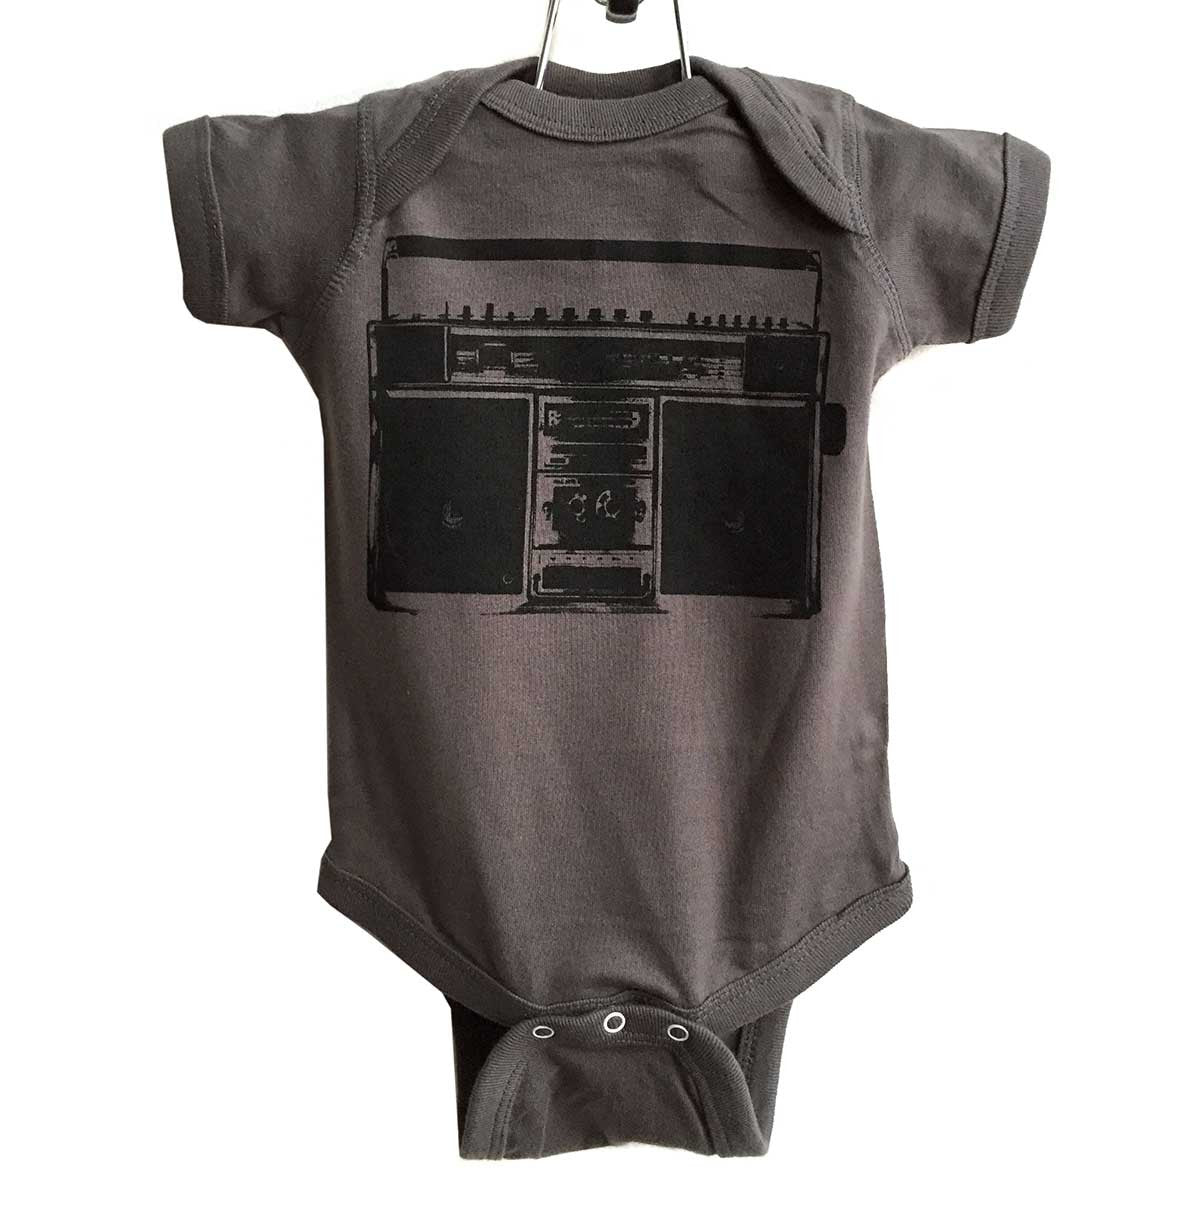 3af3625b0b Boombox Baby Onesie, Vintage Radio Creeper. Black on charcoal, by Well Done  Goods